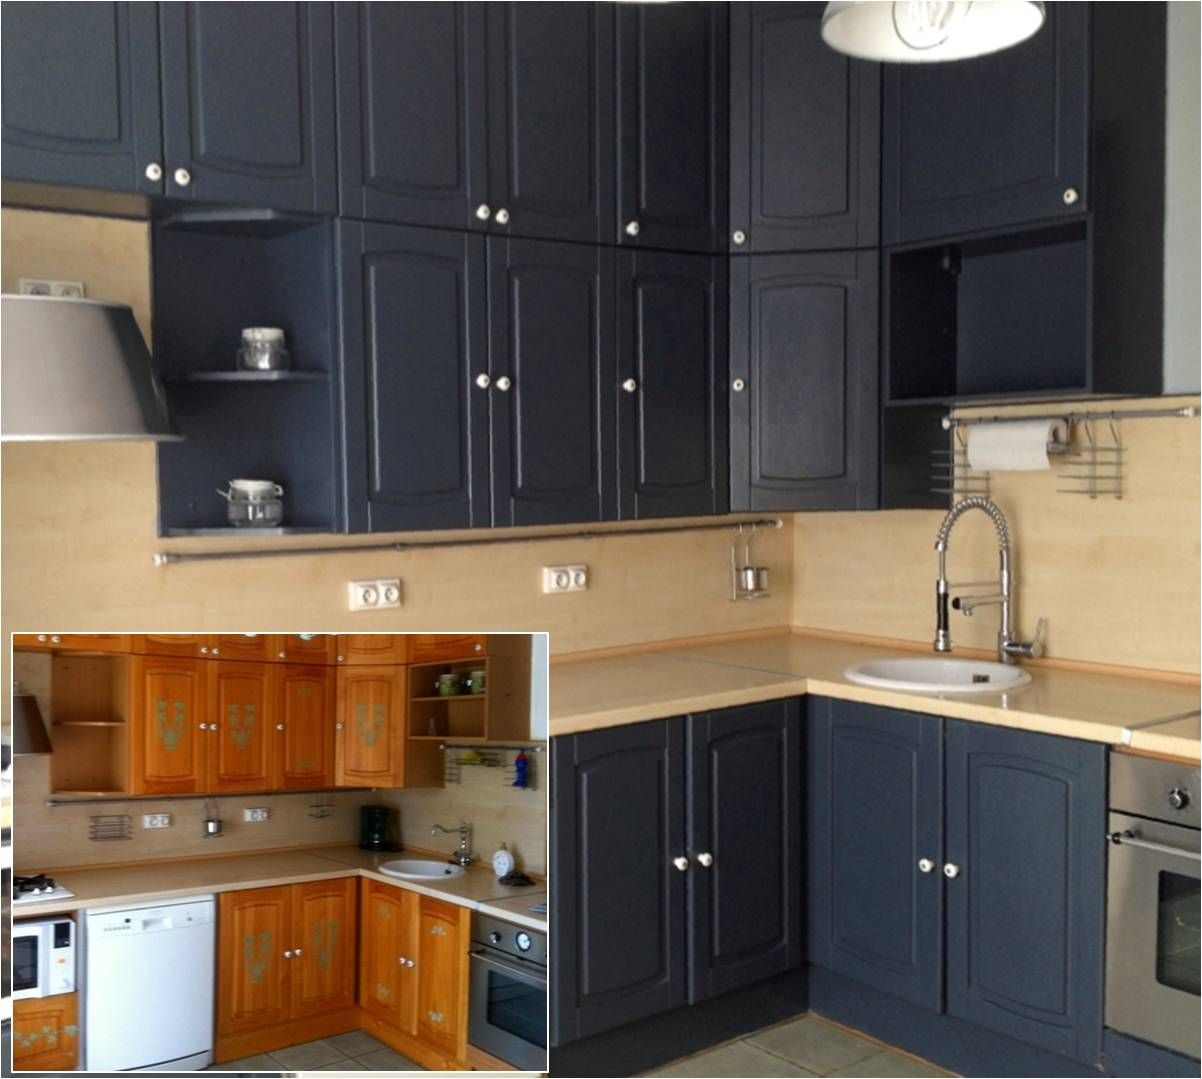 Cuisine Avant Apr S Satinelle Anthracite Relooking